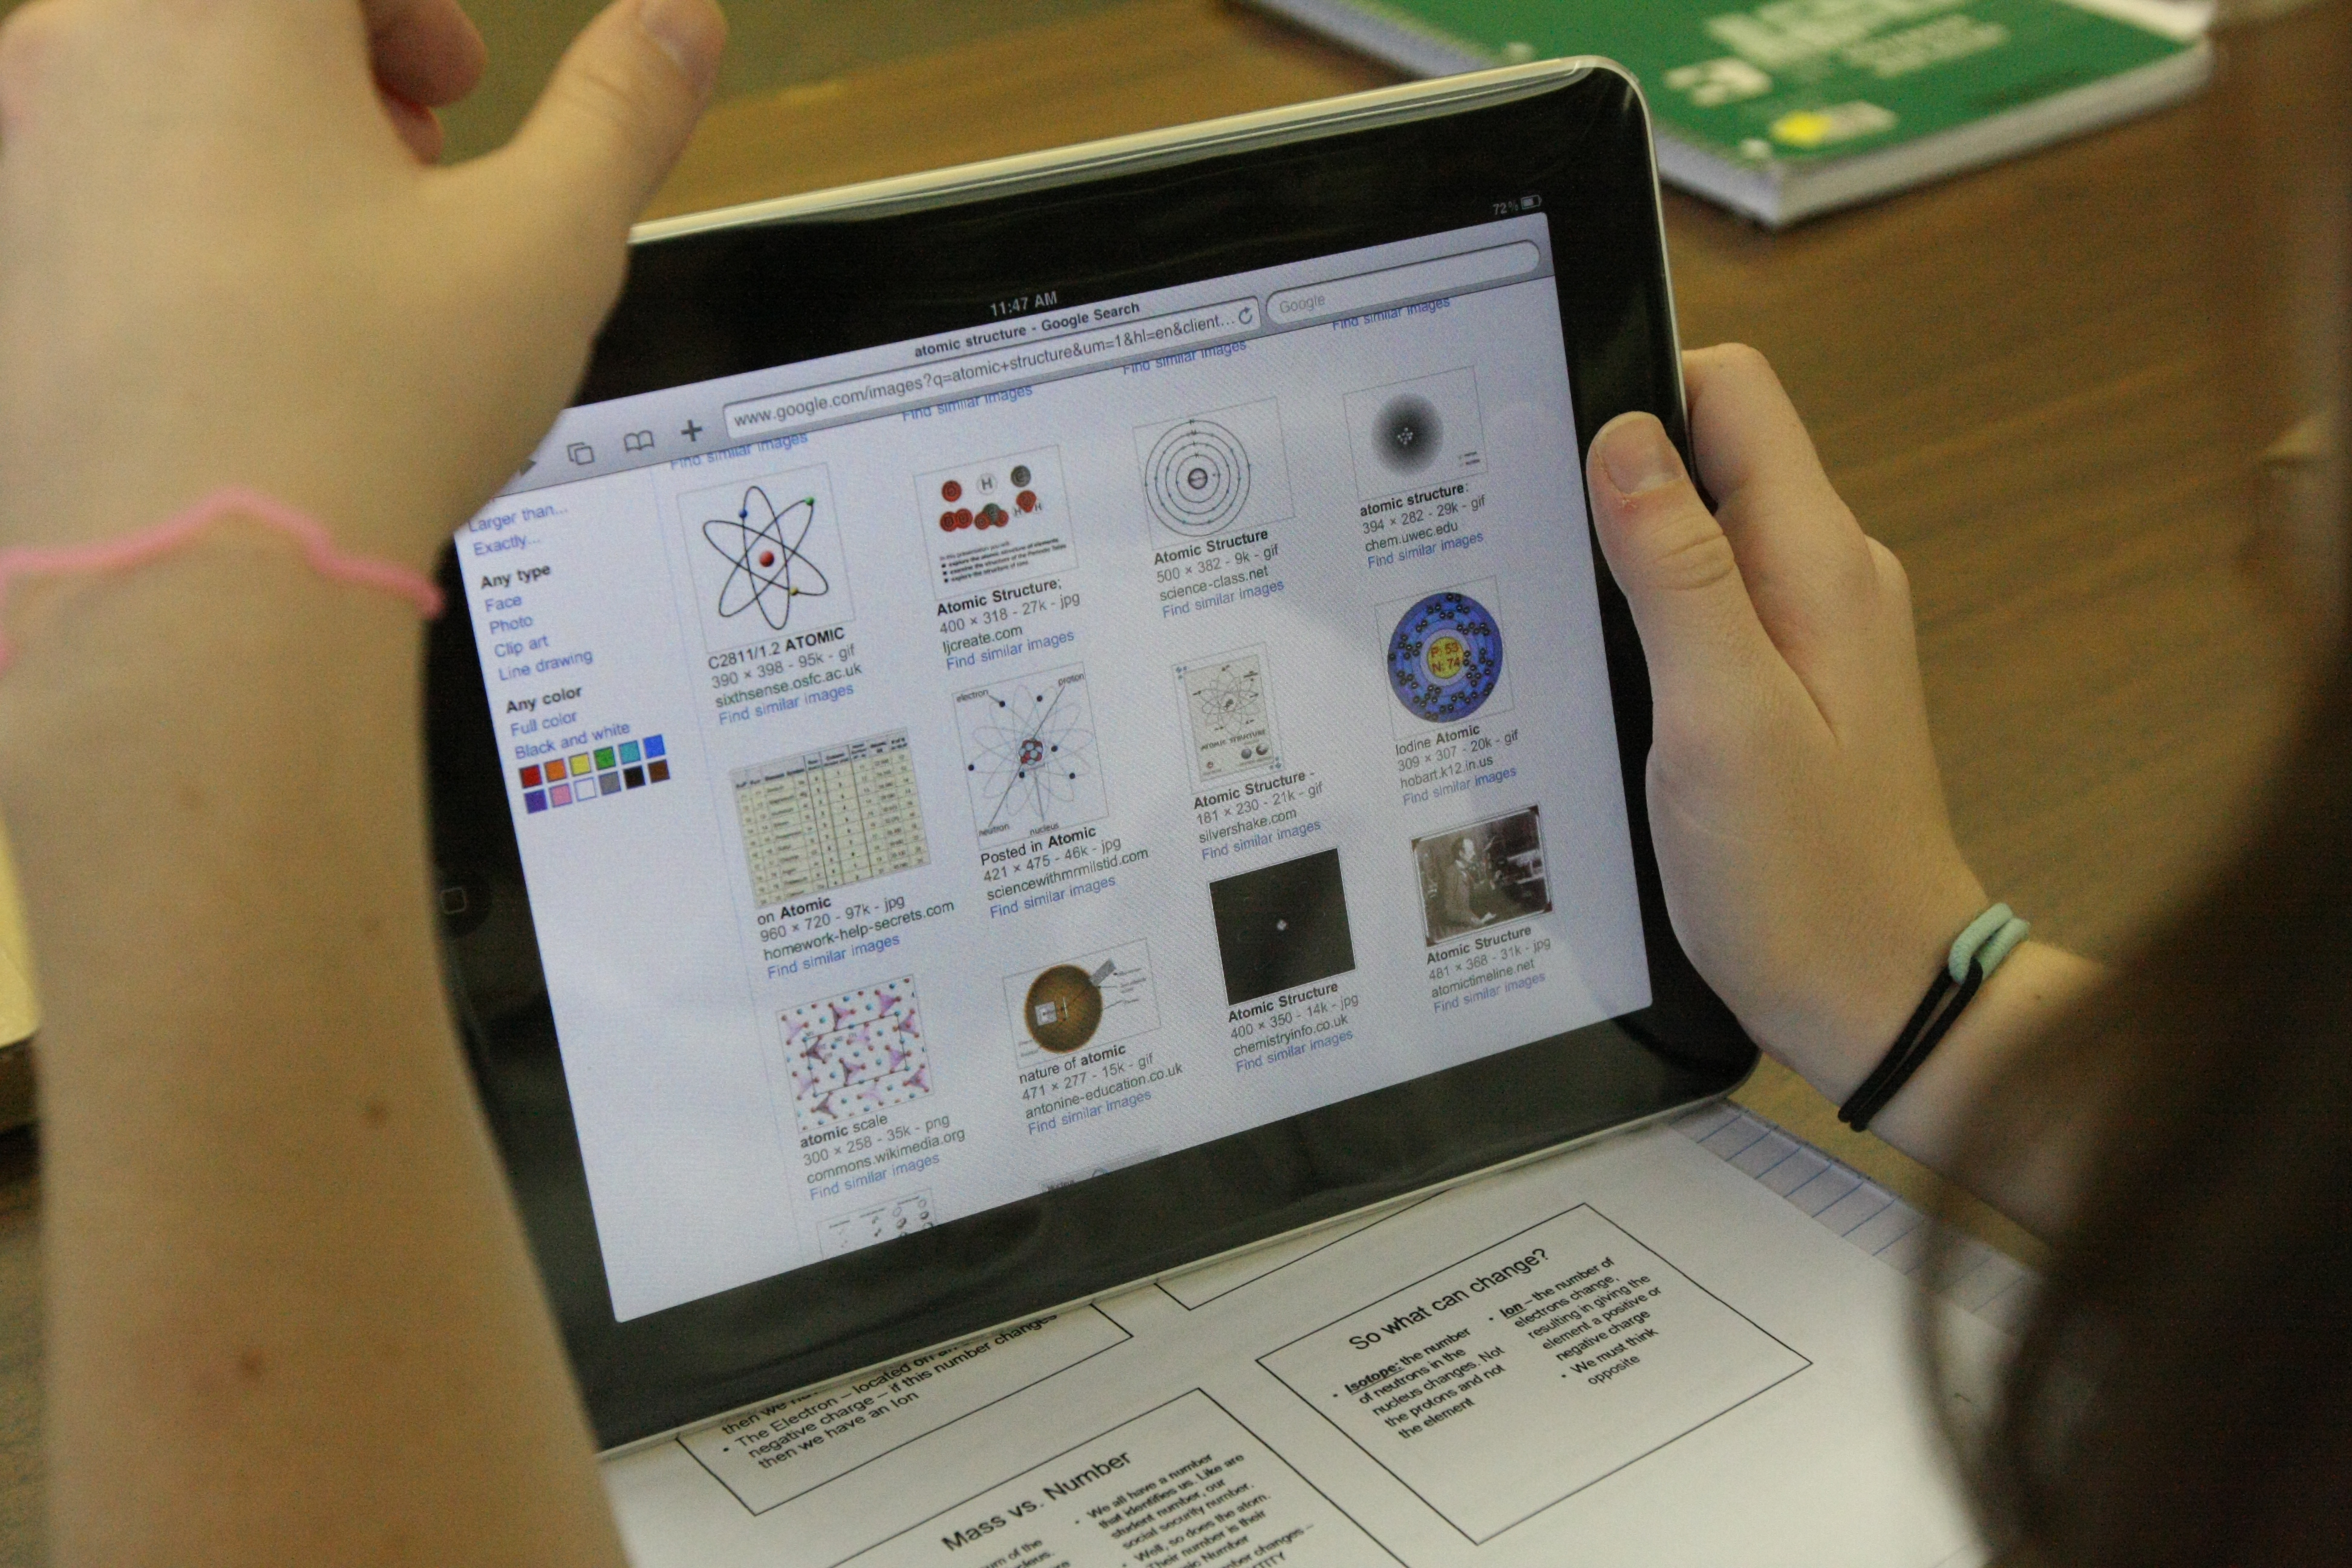 Students who read on tablets have lower test scores, study shows